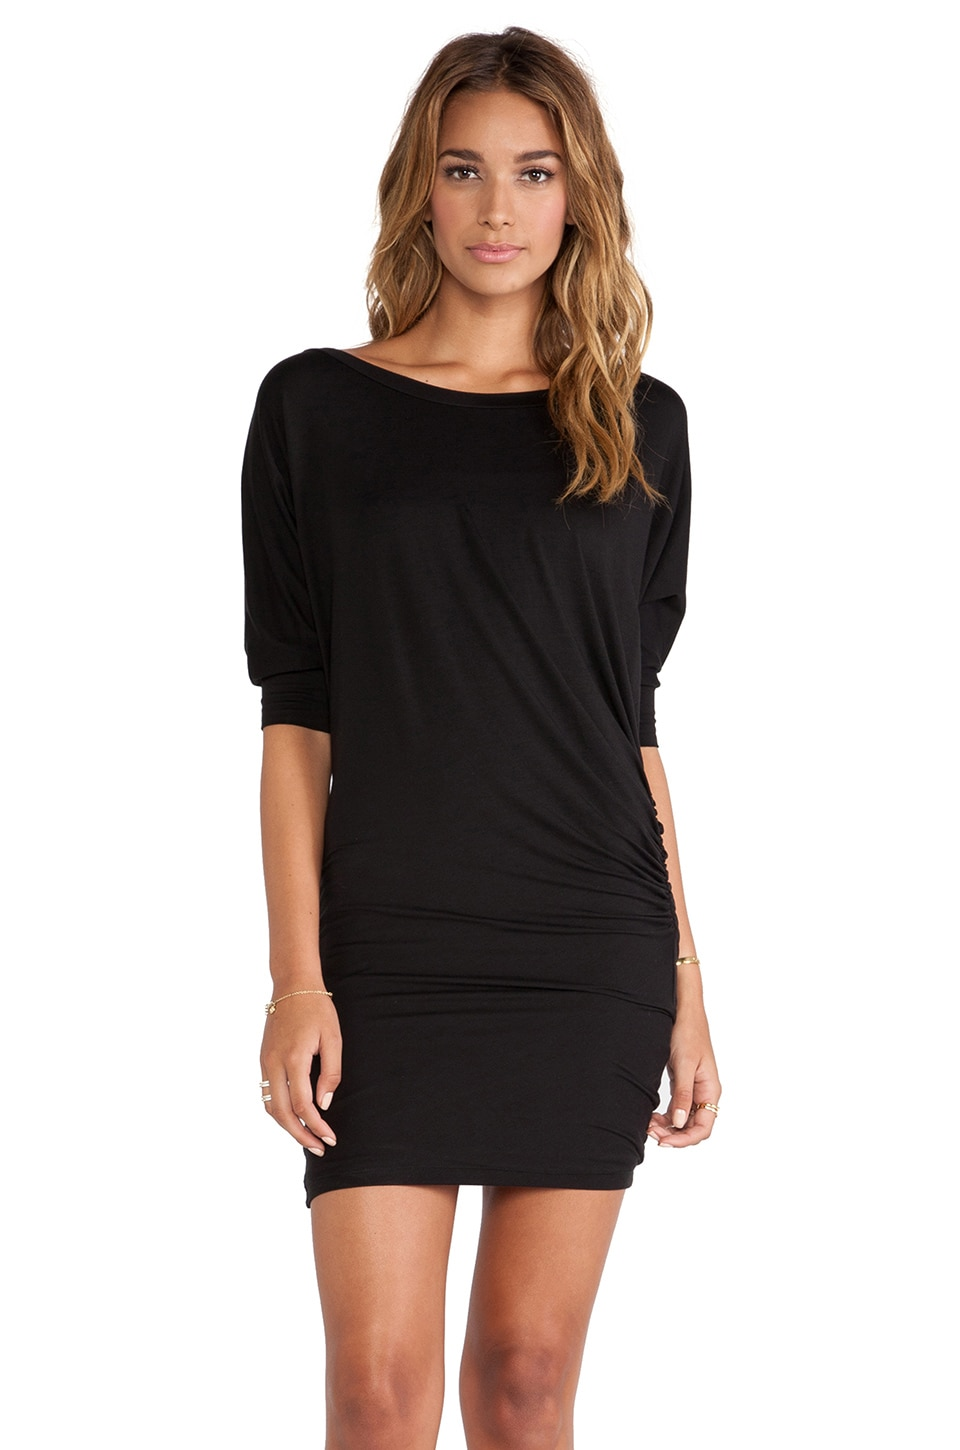 Splendid Shirred 3/4 Slv Dress in Black